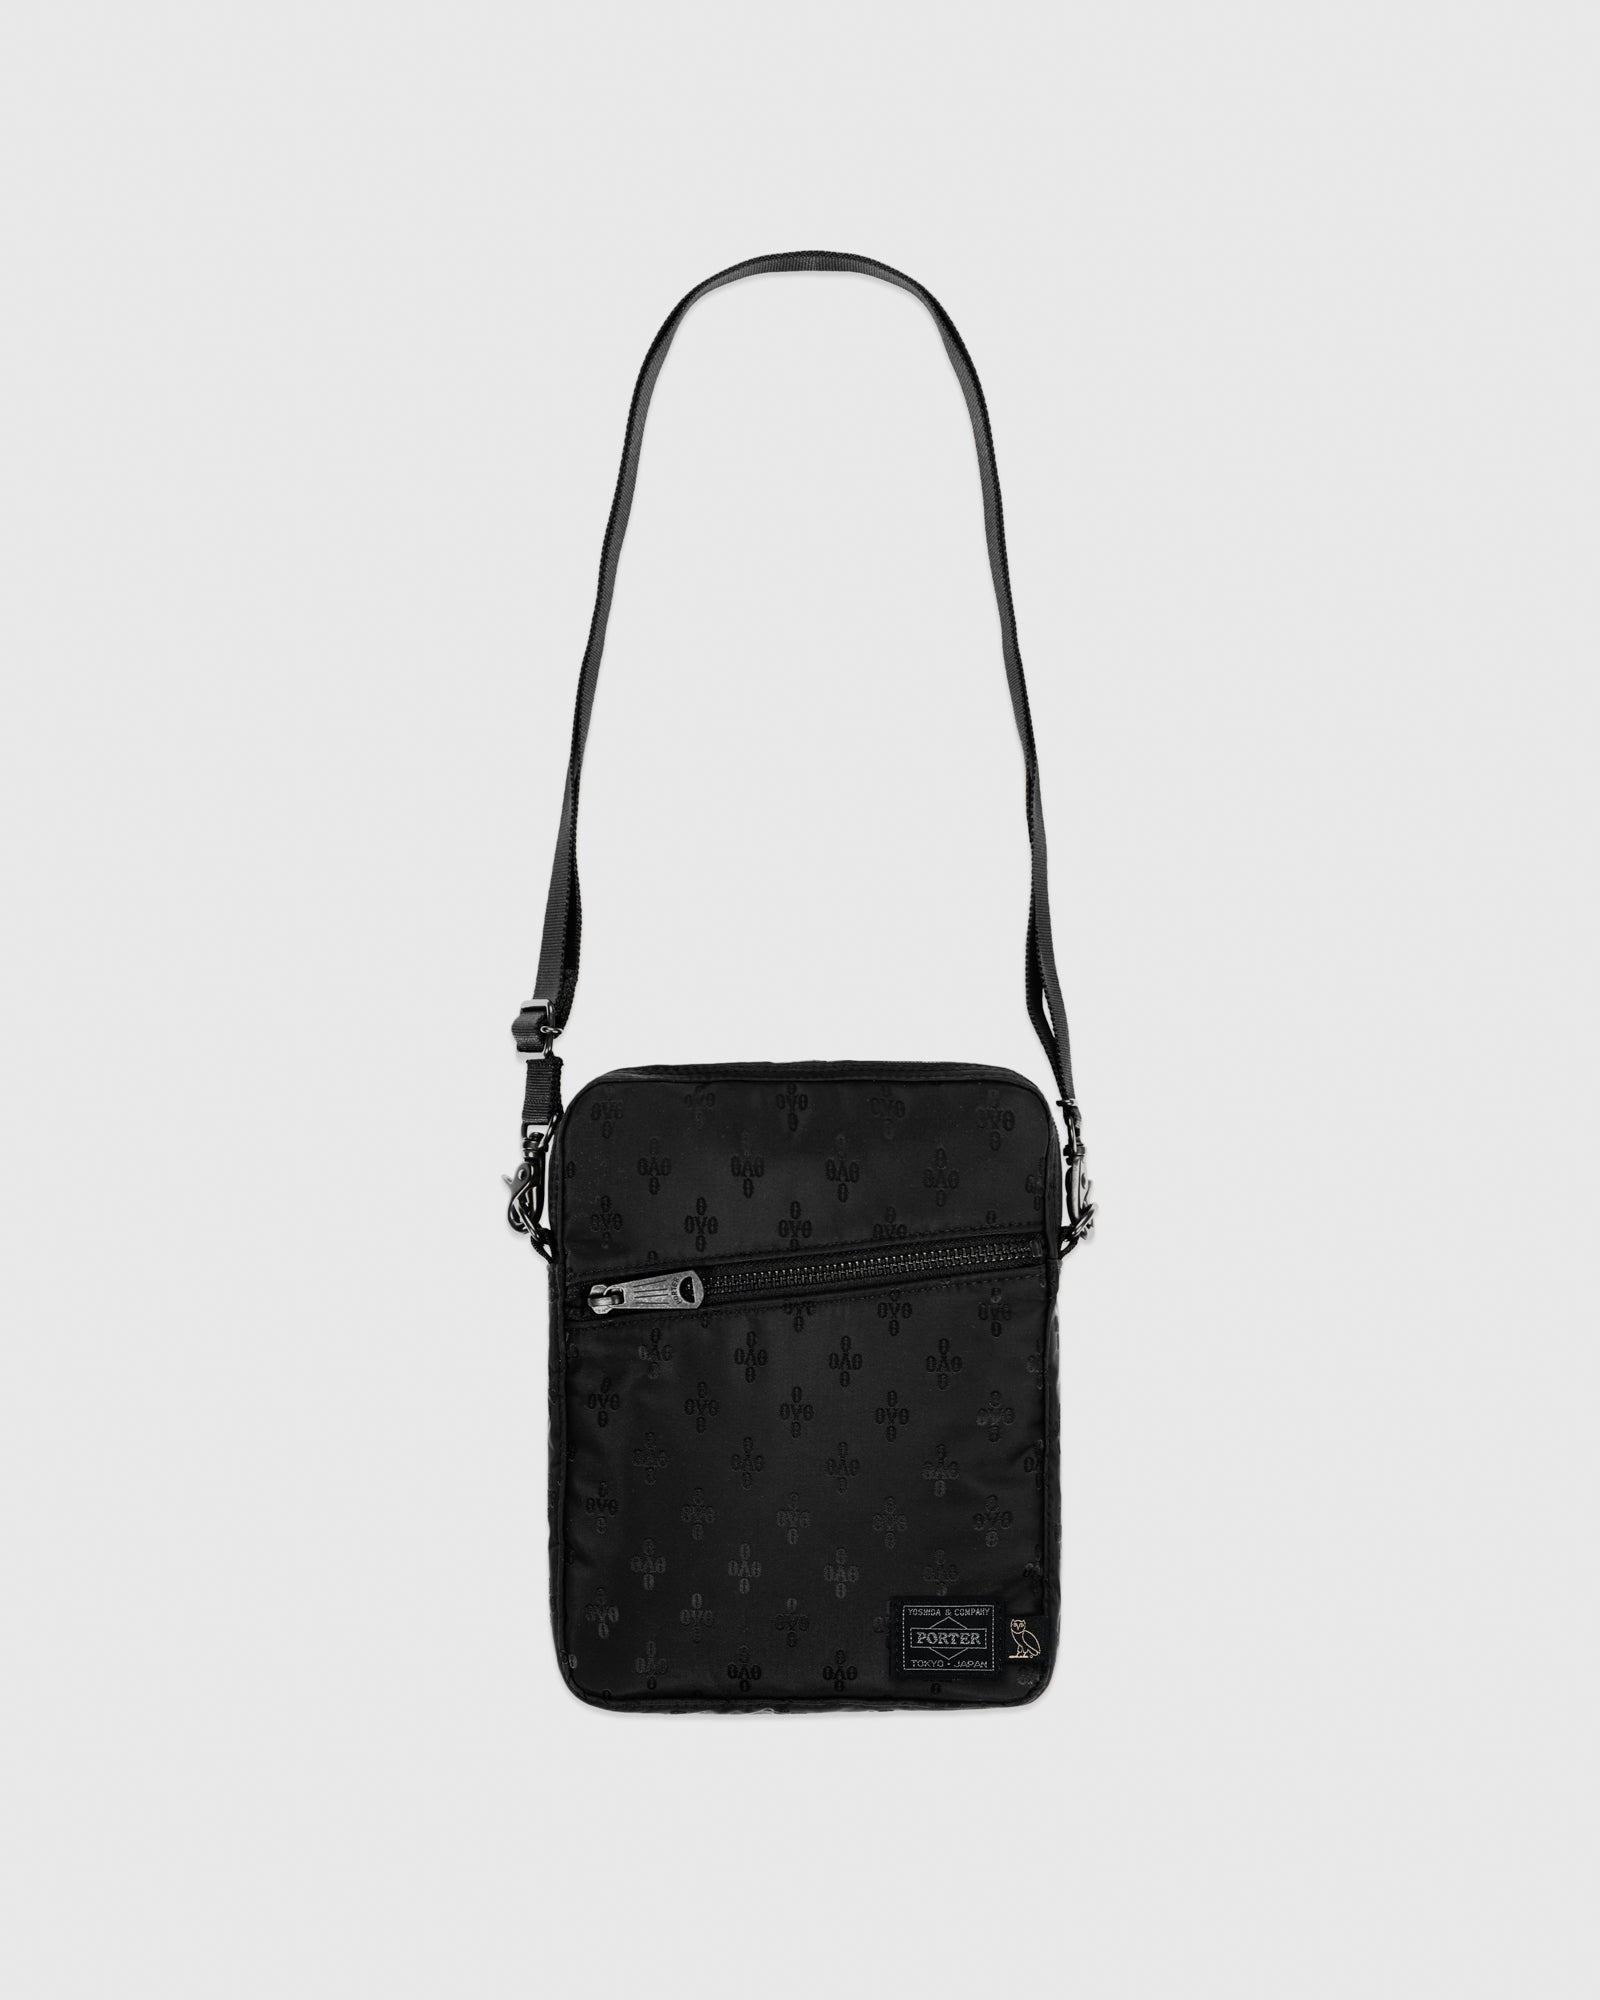 OVO X PORTER SHOULDER BAG - BLACK IMAGE #1